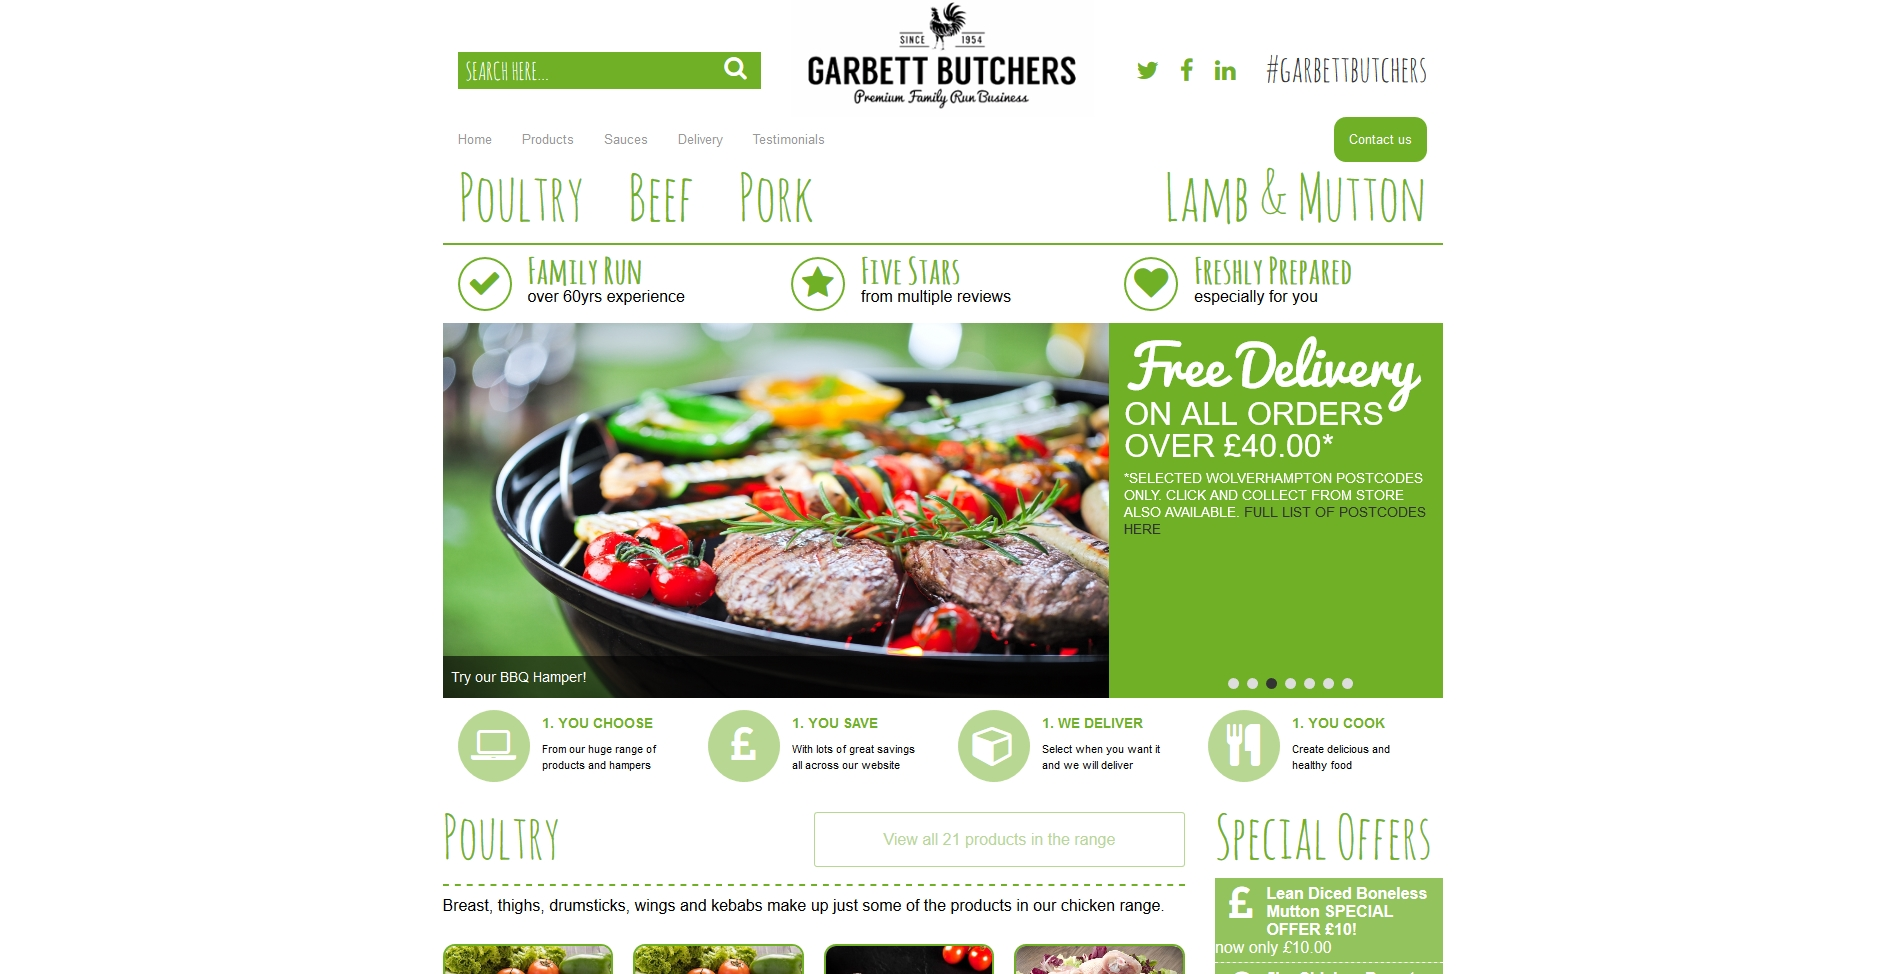 garbettbutchers.co.uk